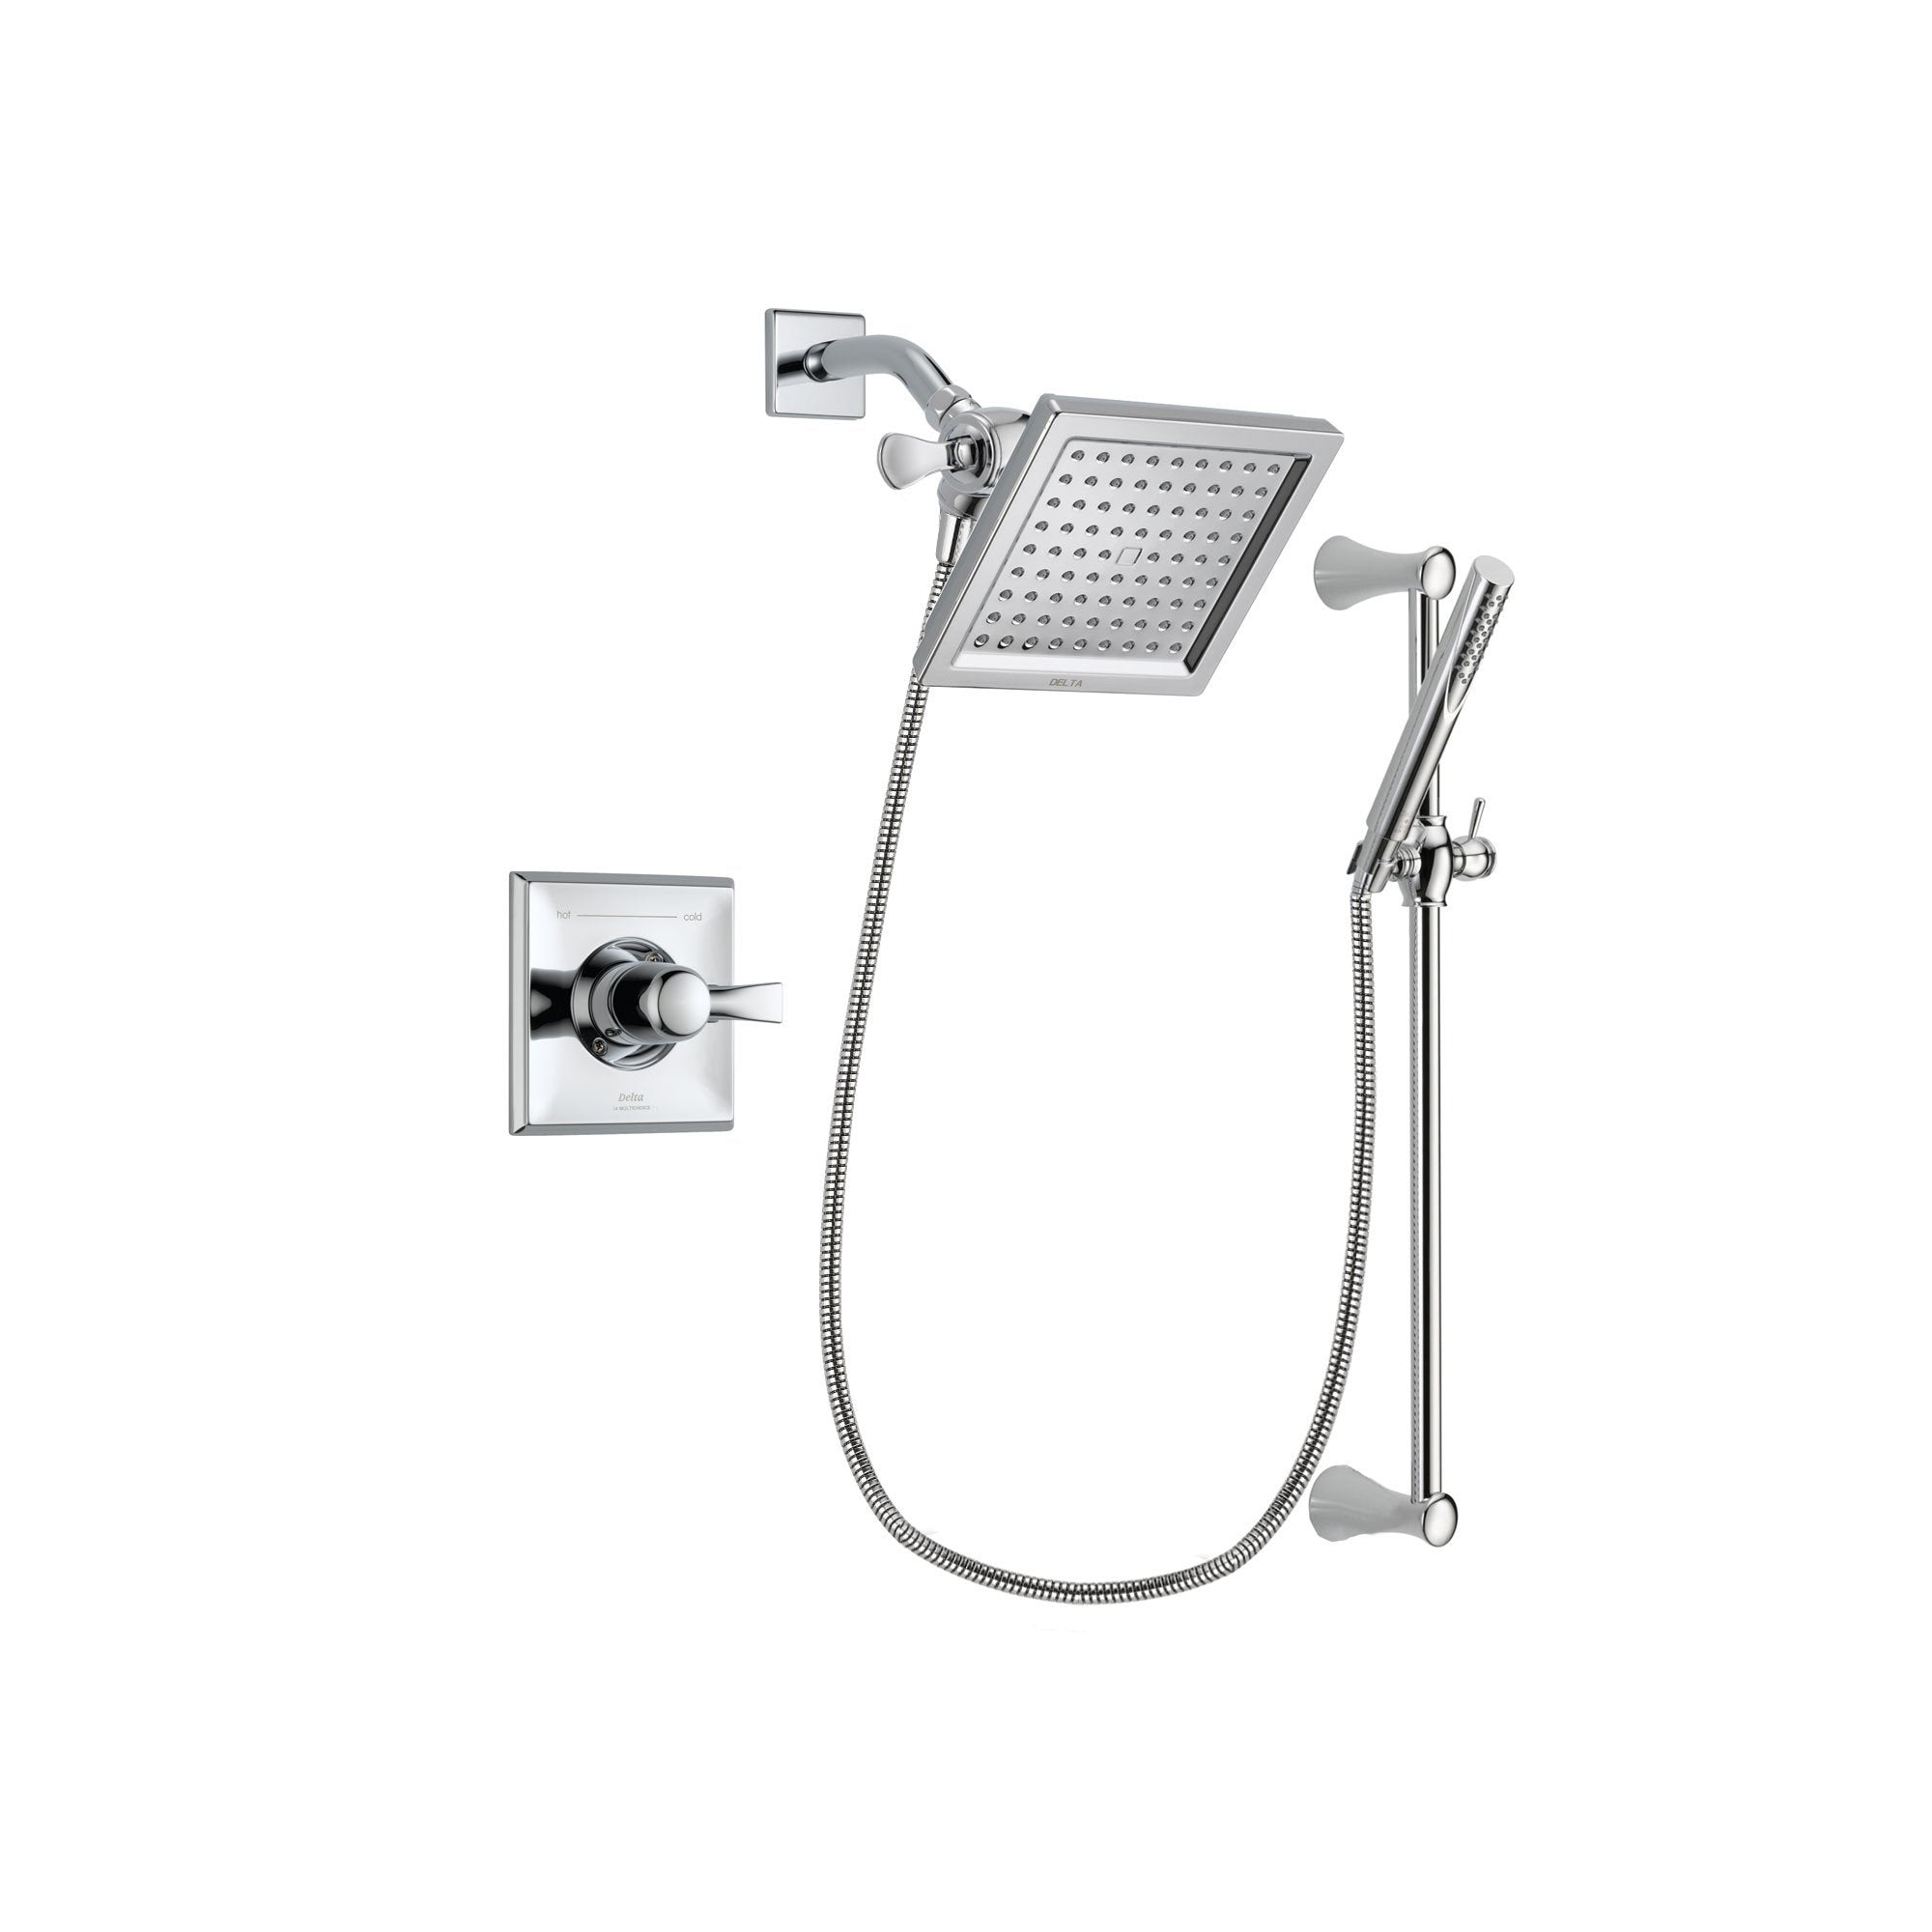 Delta Dryden Chrome Shower Faucet System with Shower Head & Hand Shower DSP0264V